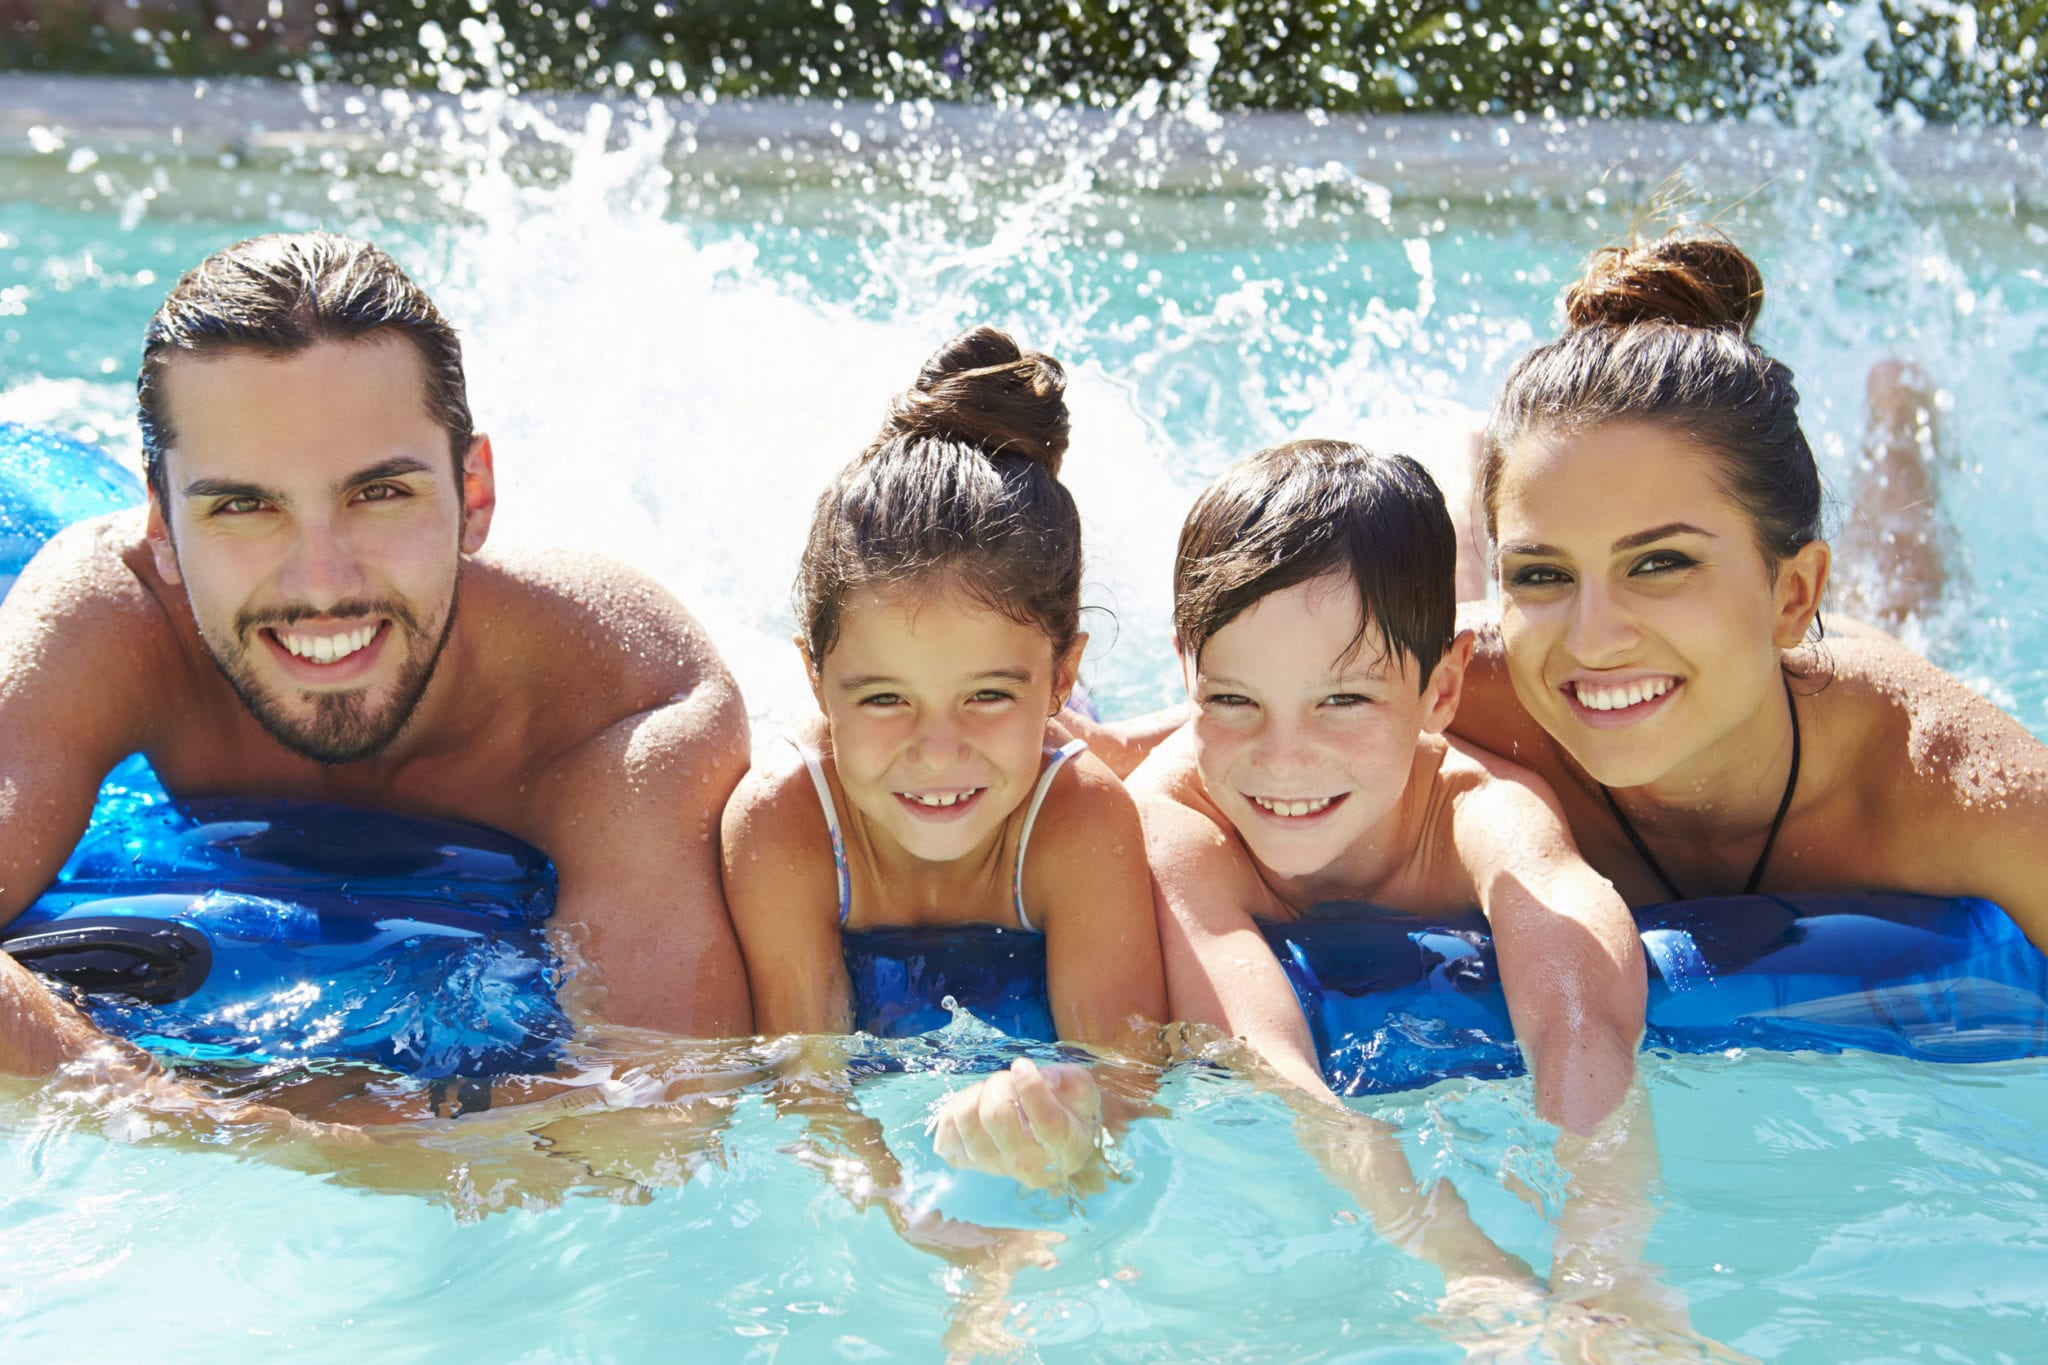 Fort Worth Swimming Pool Injury Lawyers